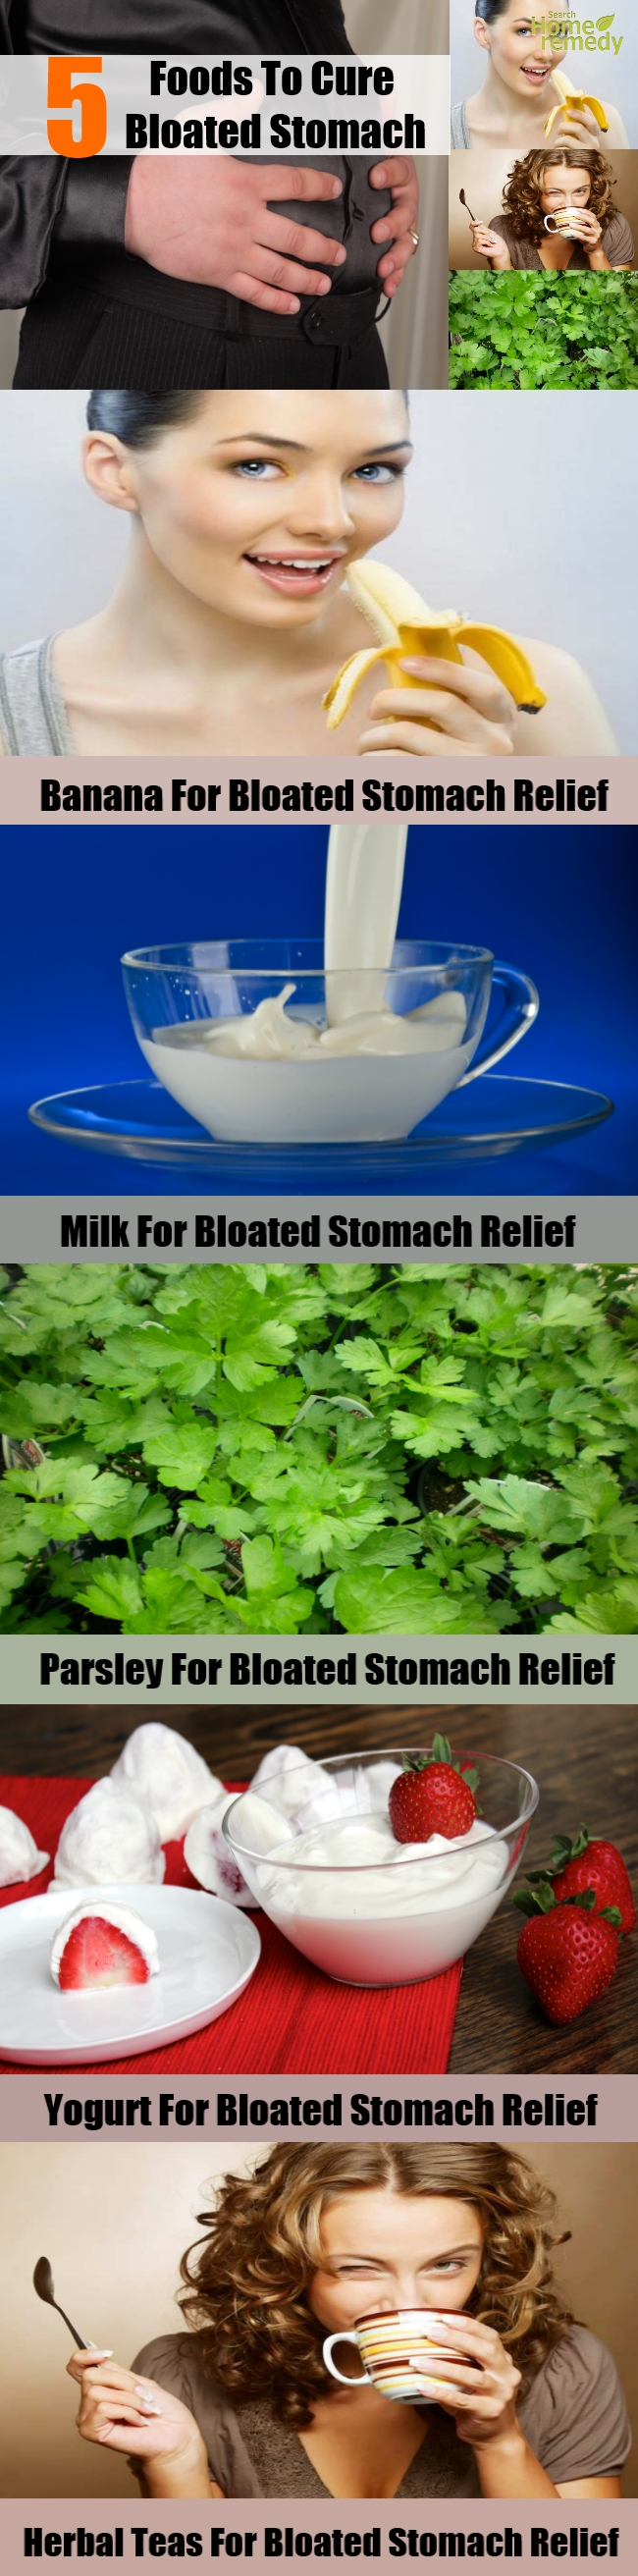 5 Foods To Cure Bloated Stomach